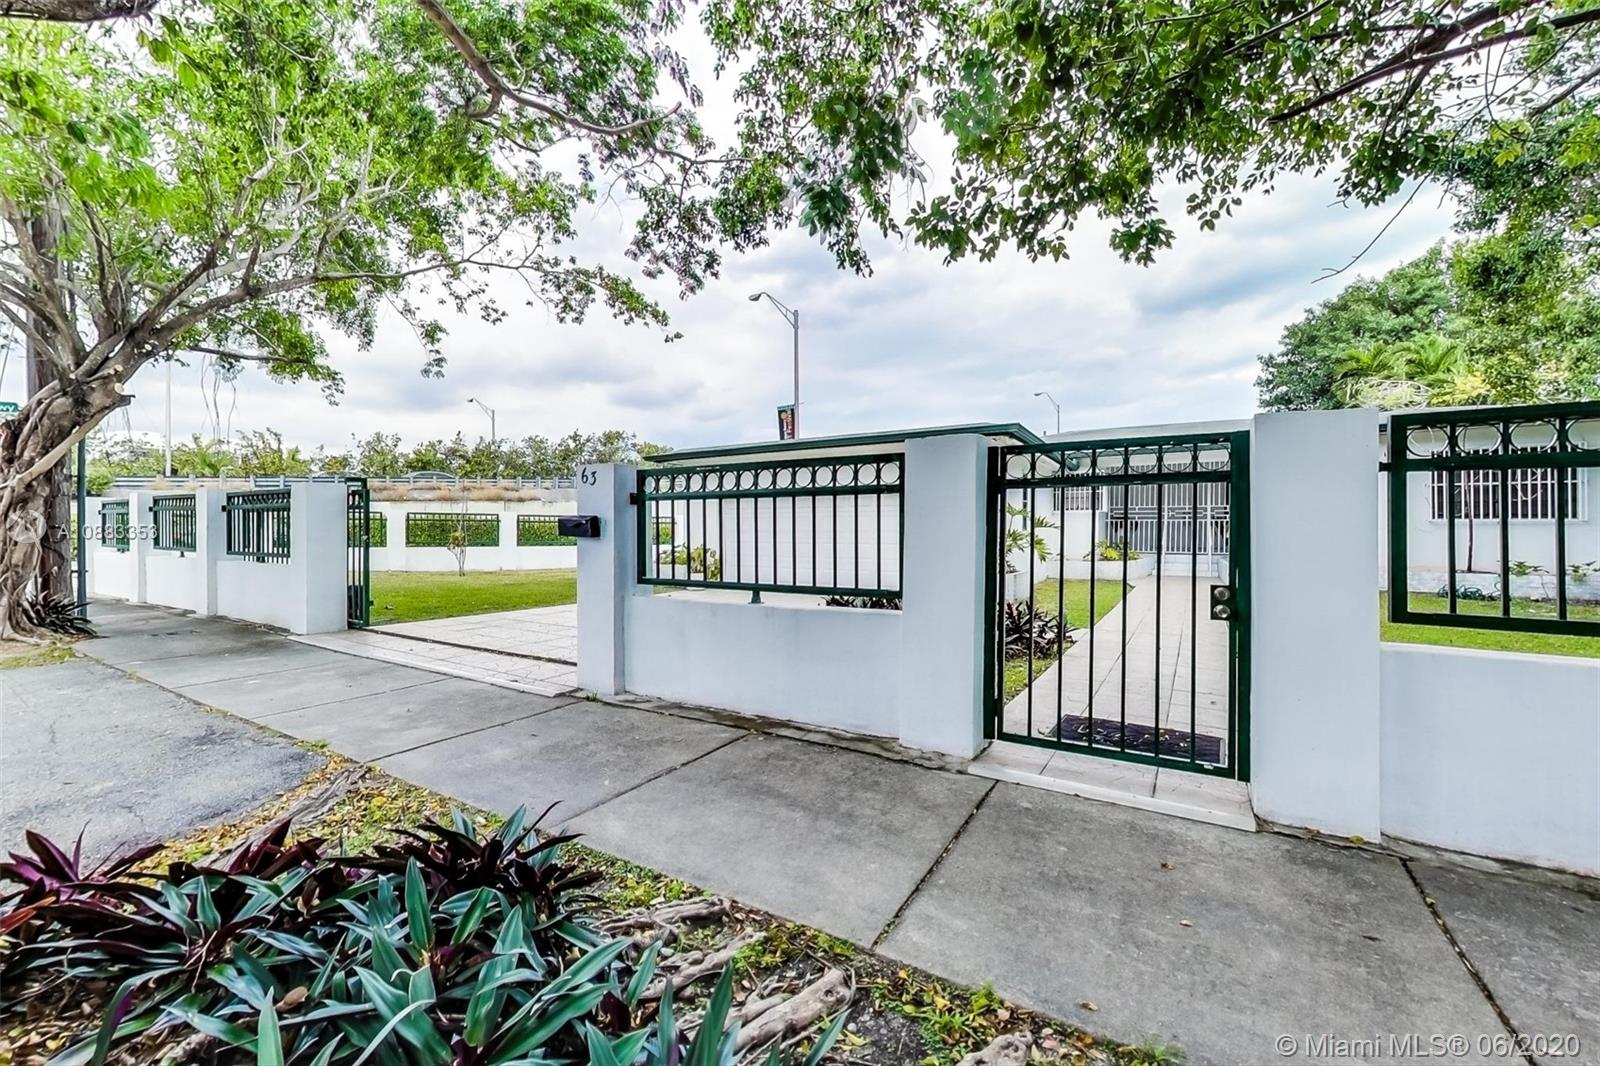 Blocks from Vizcaya Museum & Gardens and walking distance to Vizcaya Metrorail station. Spacious 4 Bedroom, 2 1/2 Bath home with a great floor plan and a pool. Owner Occupied, virtual showings only.